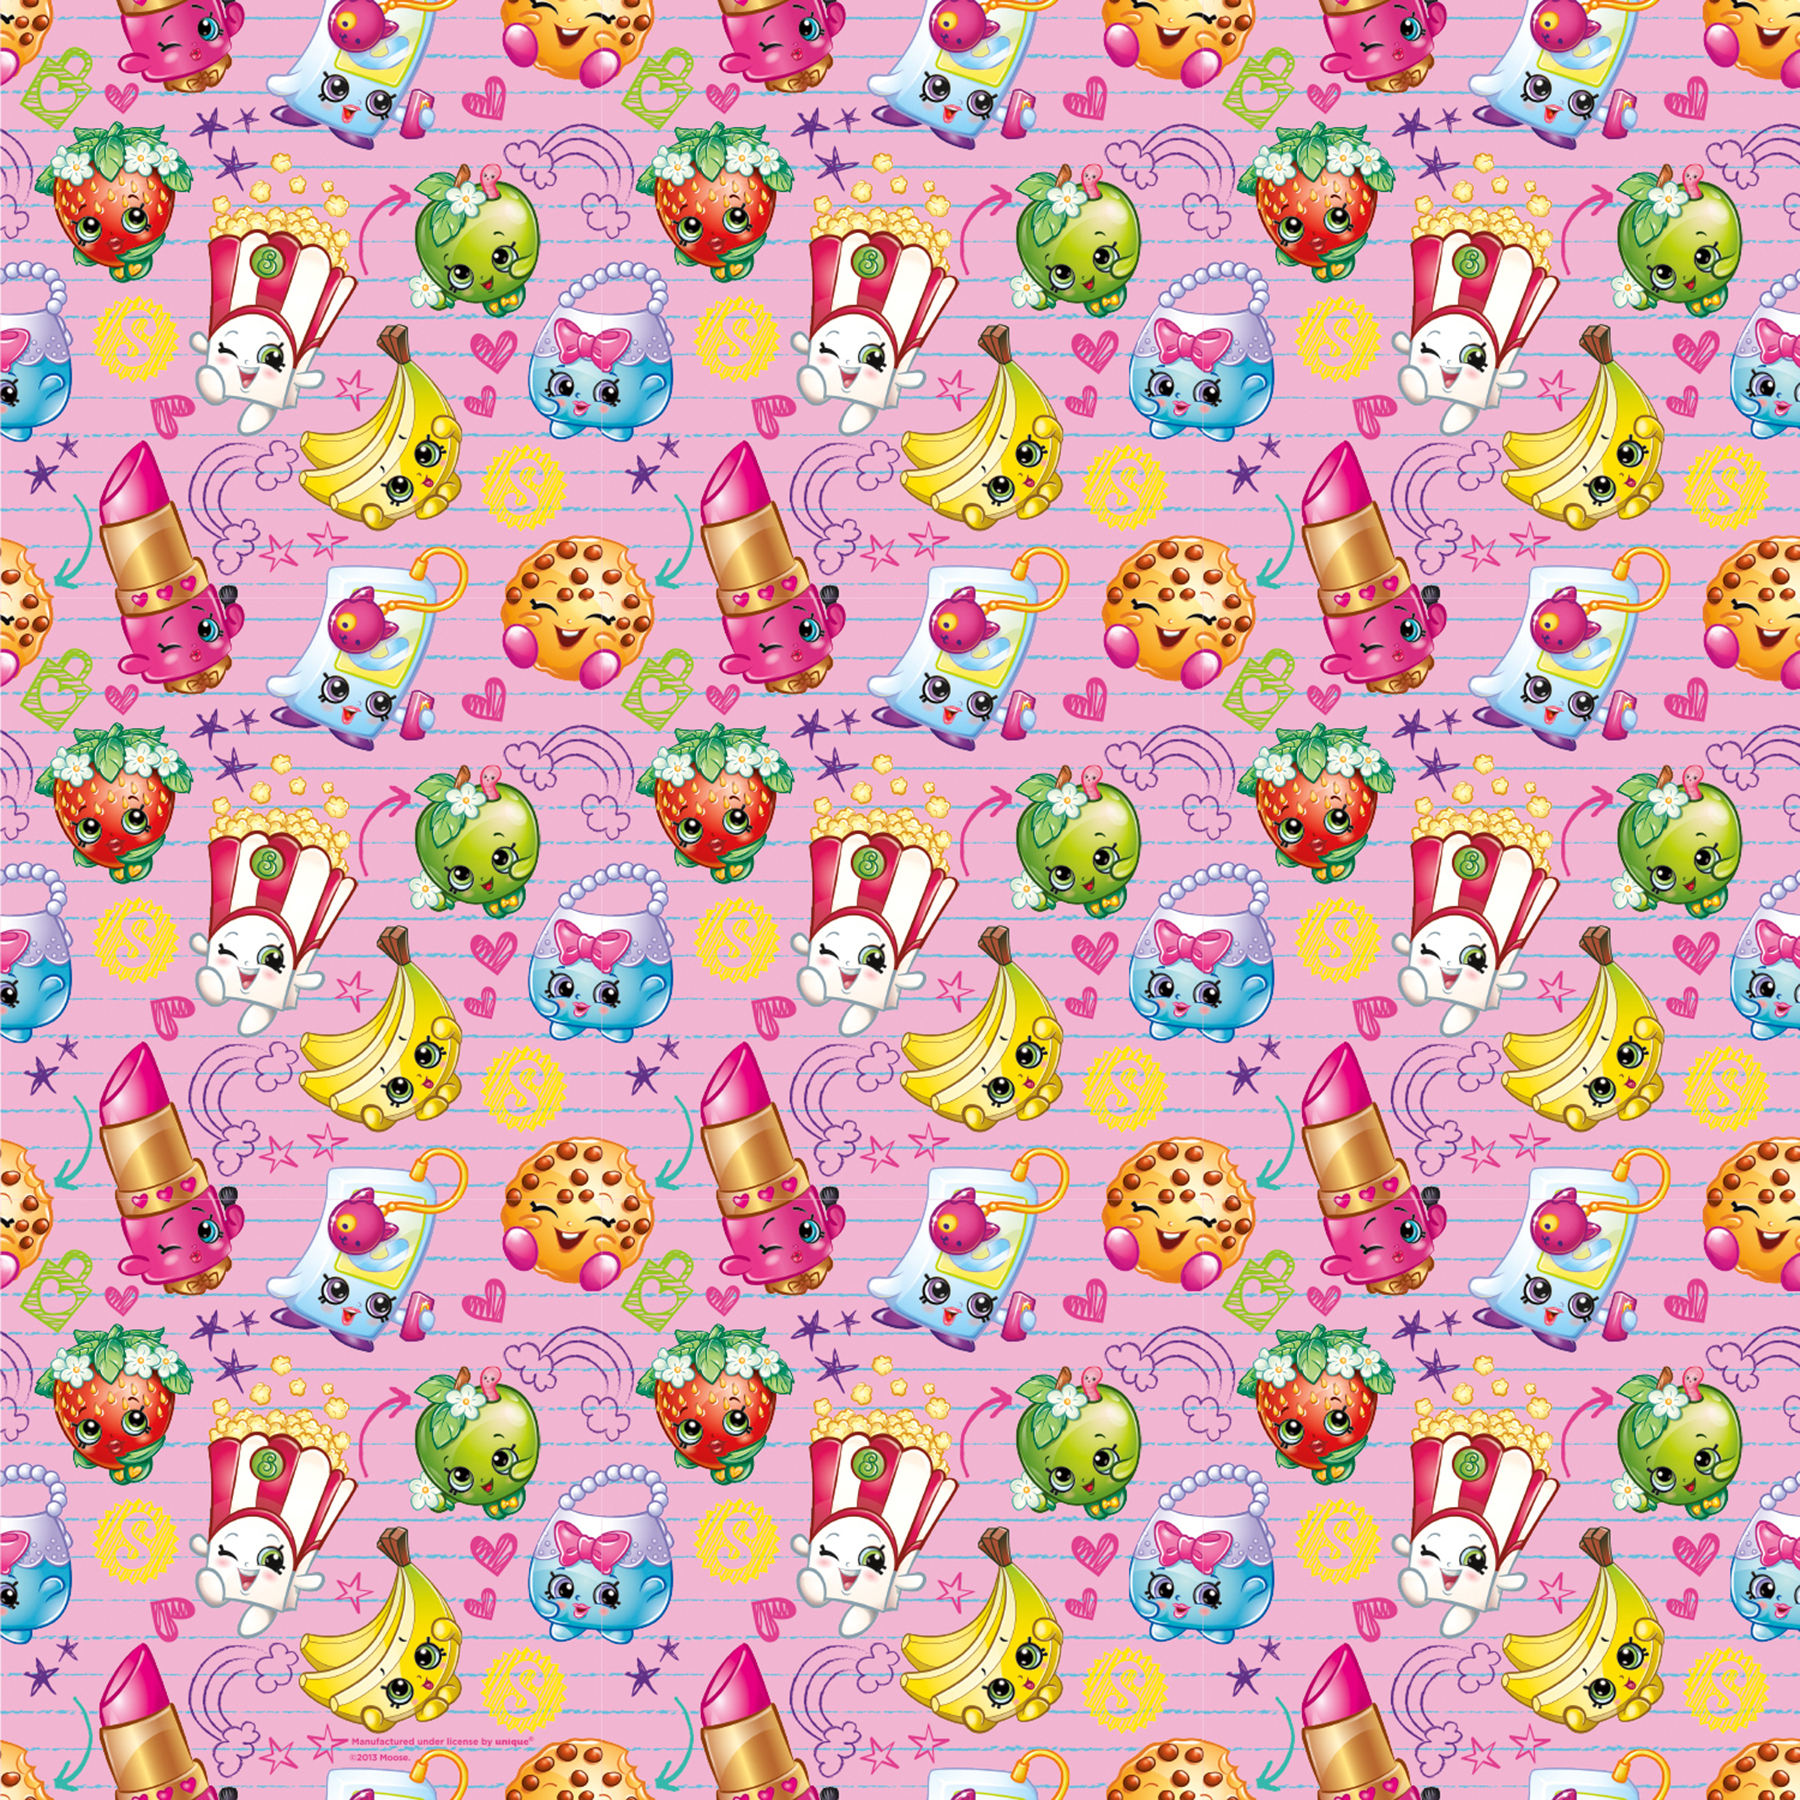 Tinkerbell Wallpaper For Iphone 6 Shopkins Wrapping Paper Roll Shopkins Gift Wrap